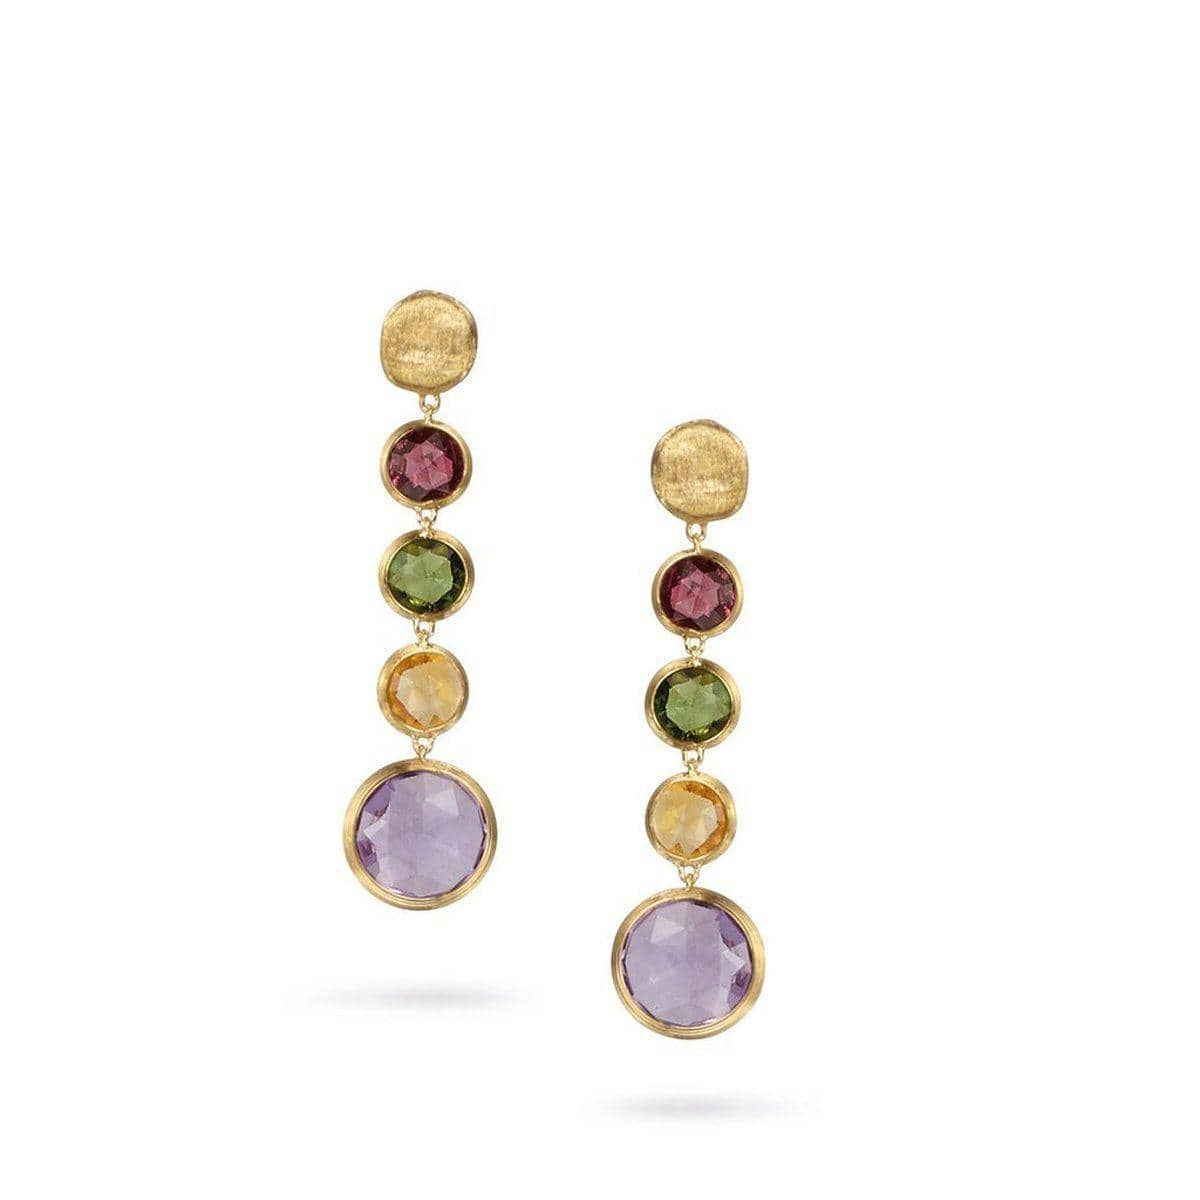 18K Jaipur Earrings - OB901 A MIX01 Y-Marco Bicego-Renee Taylor Gallery